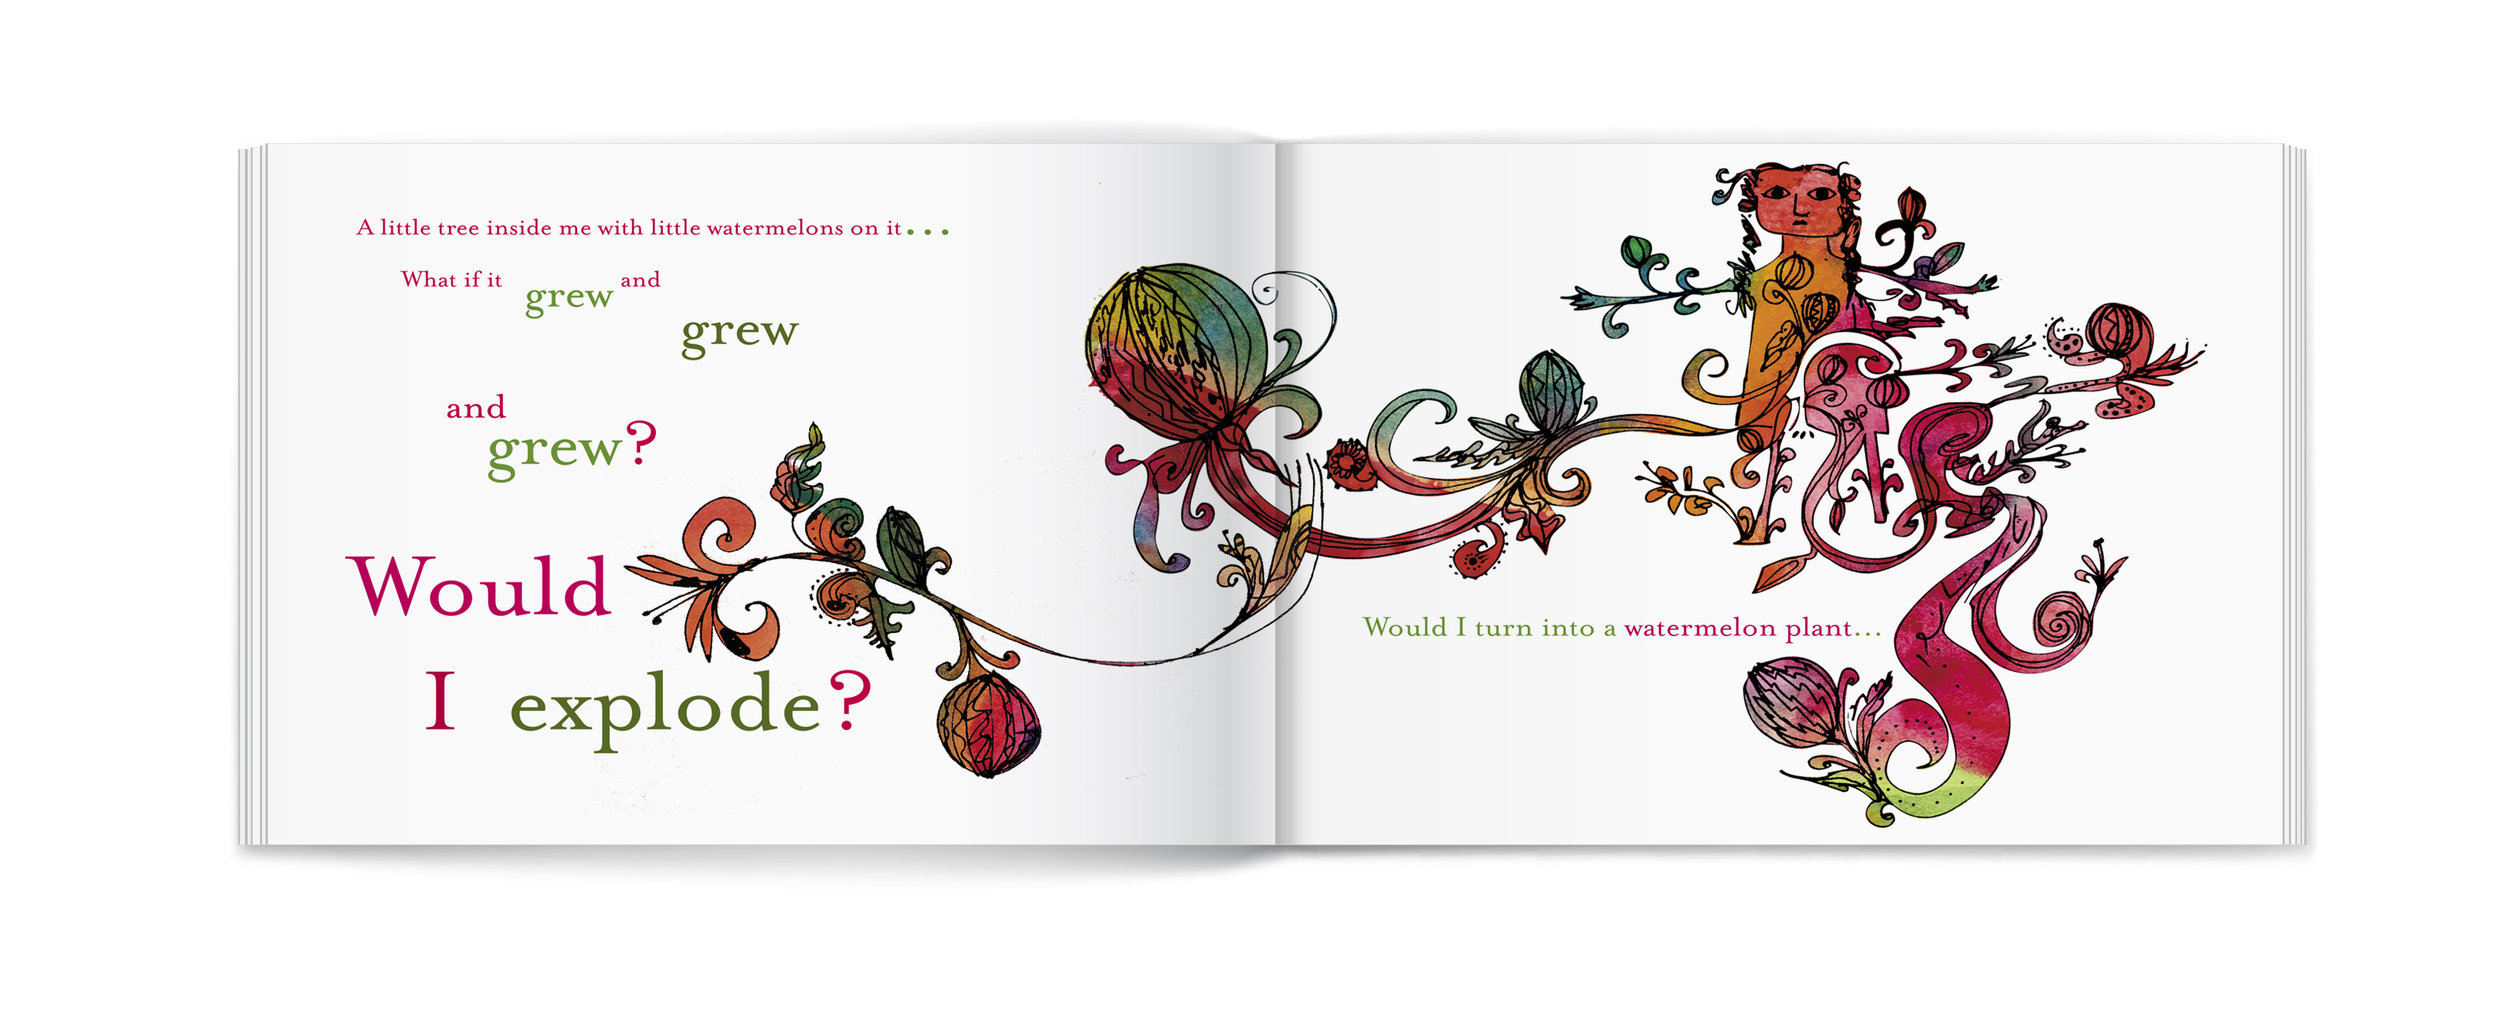 A sample spread from the book